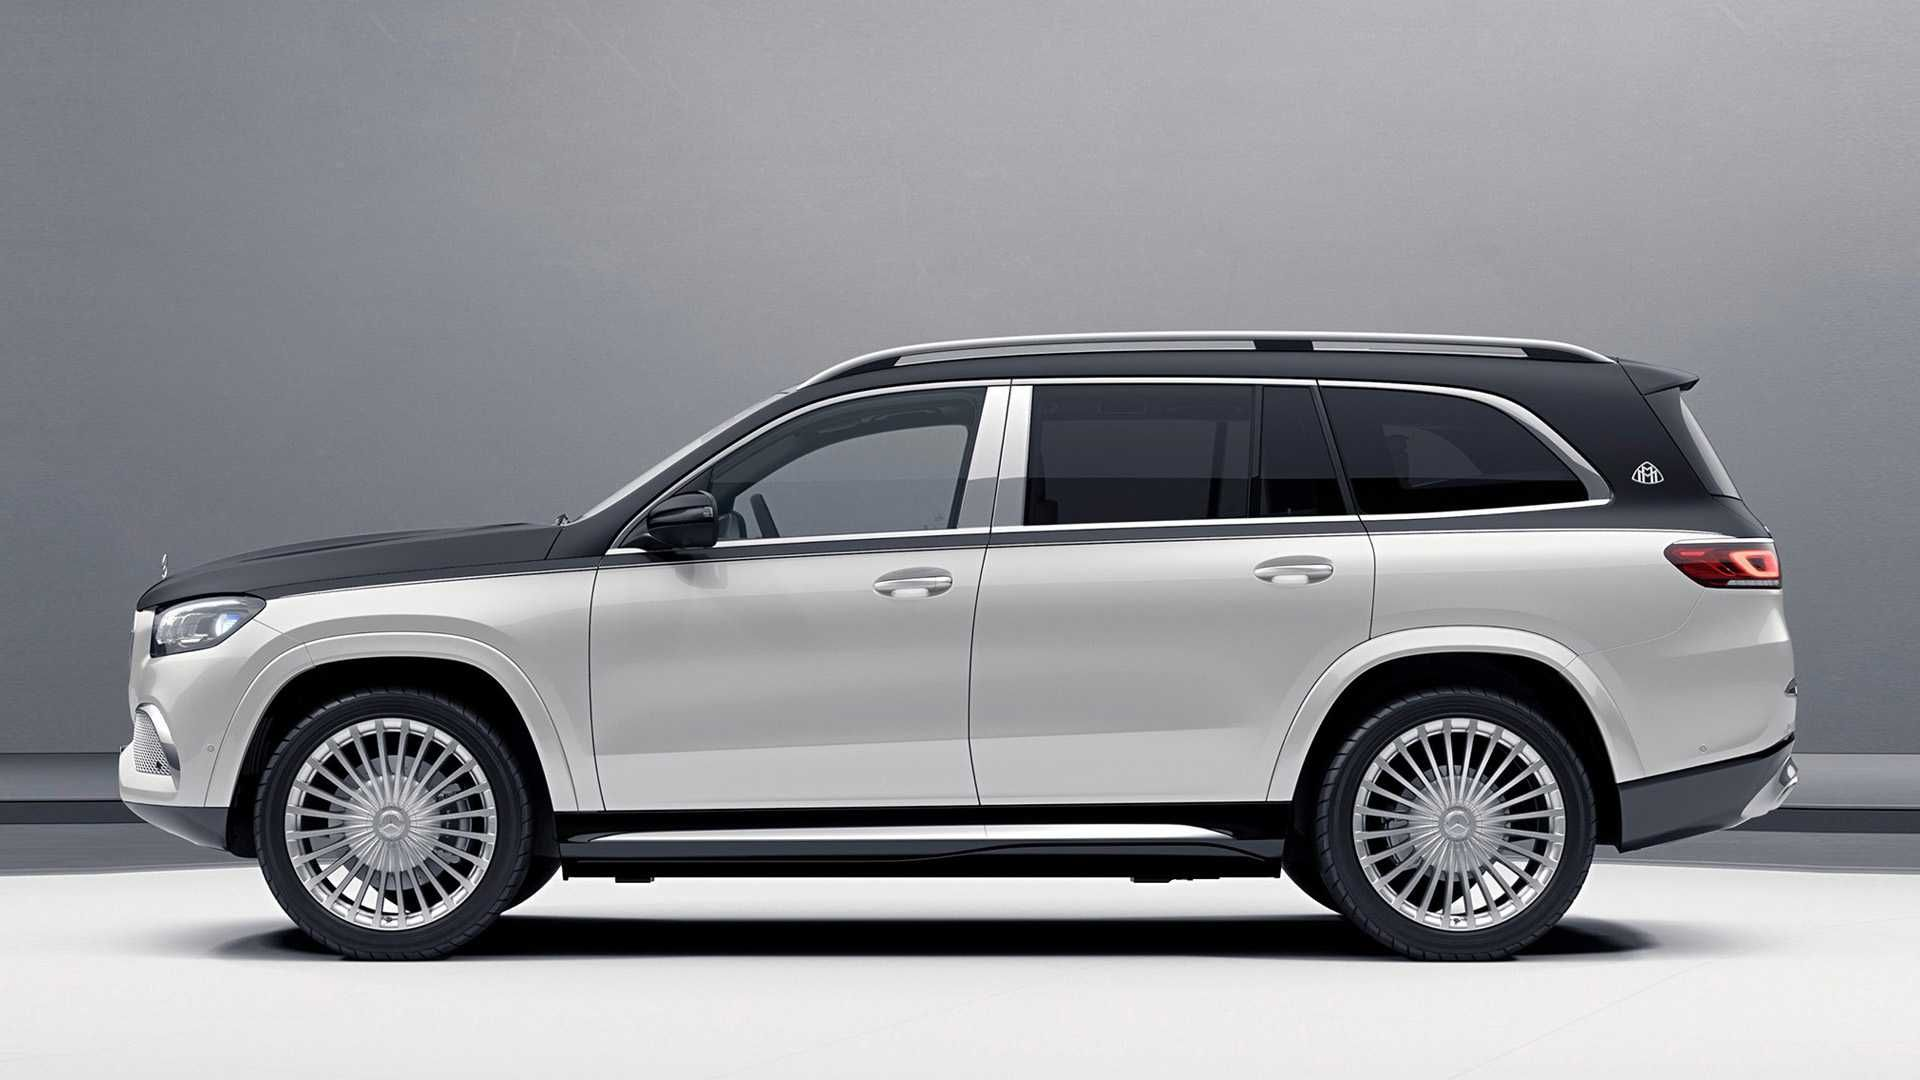 Mercedes Maybach Gls Revealed As Opulent Suv With 4 Or 5 Seats Mercedes Maybach Maybach Mercedes Benz Gl